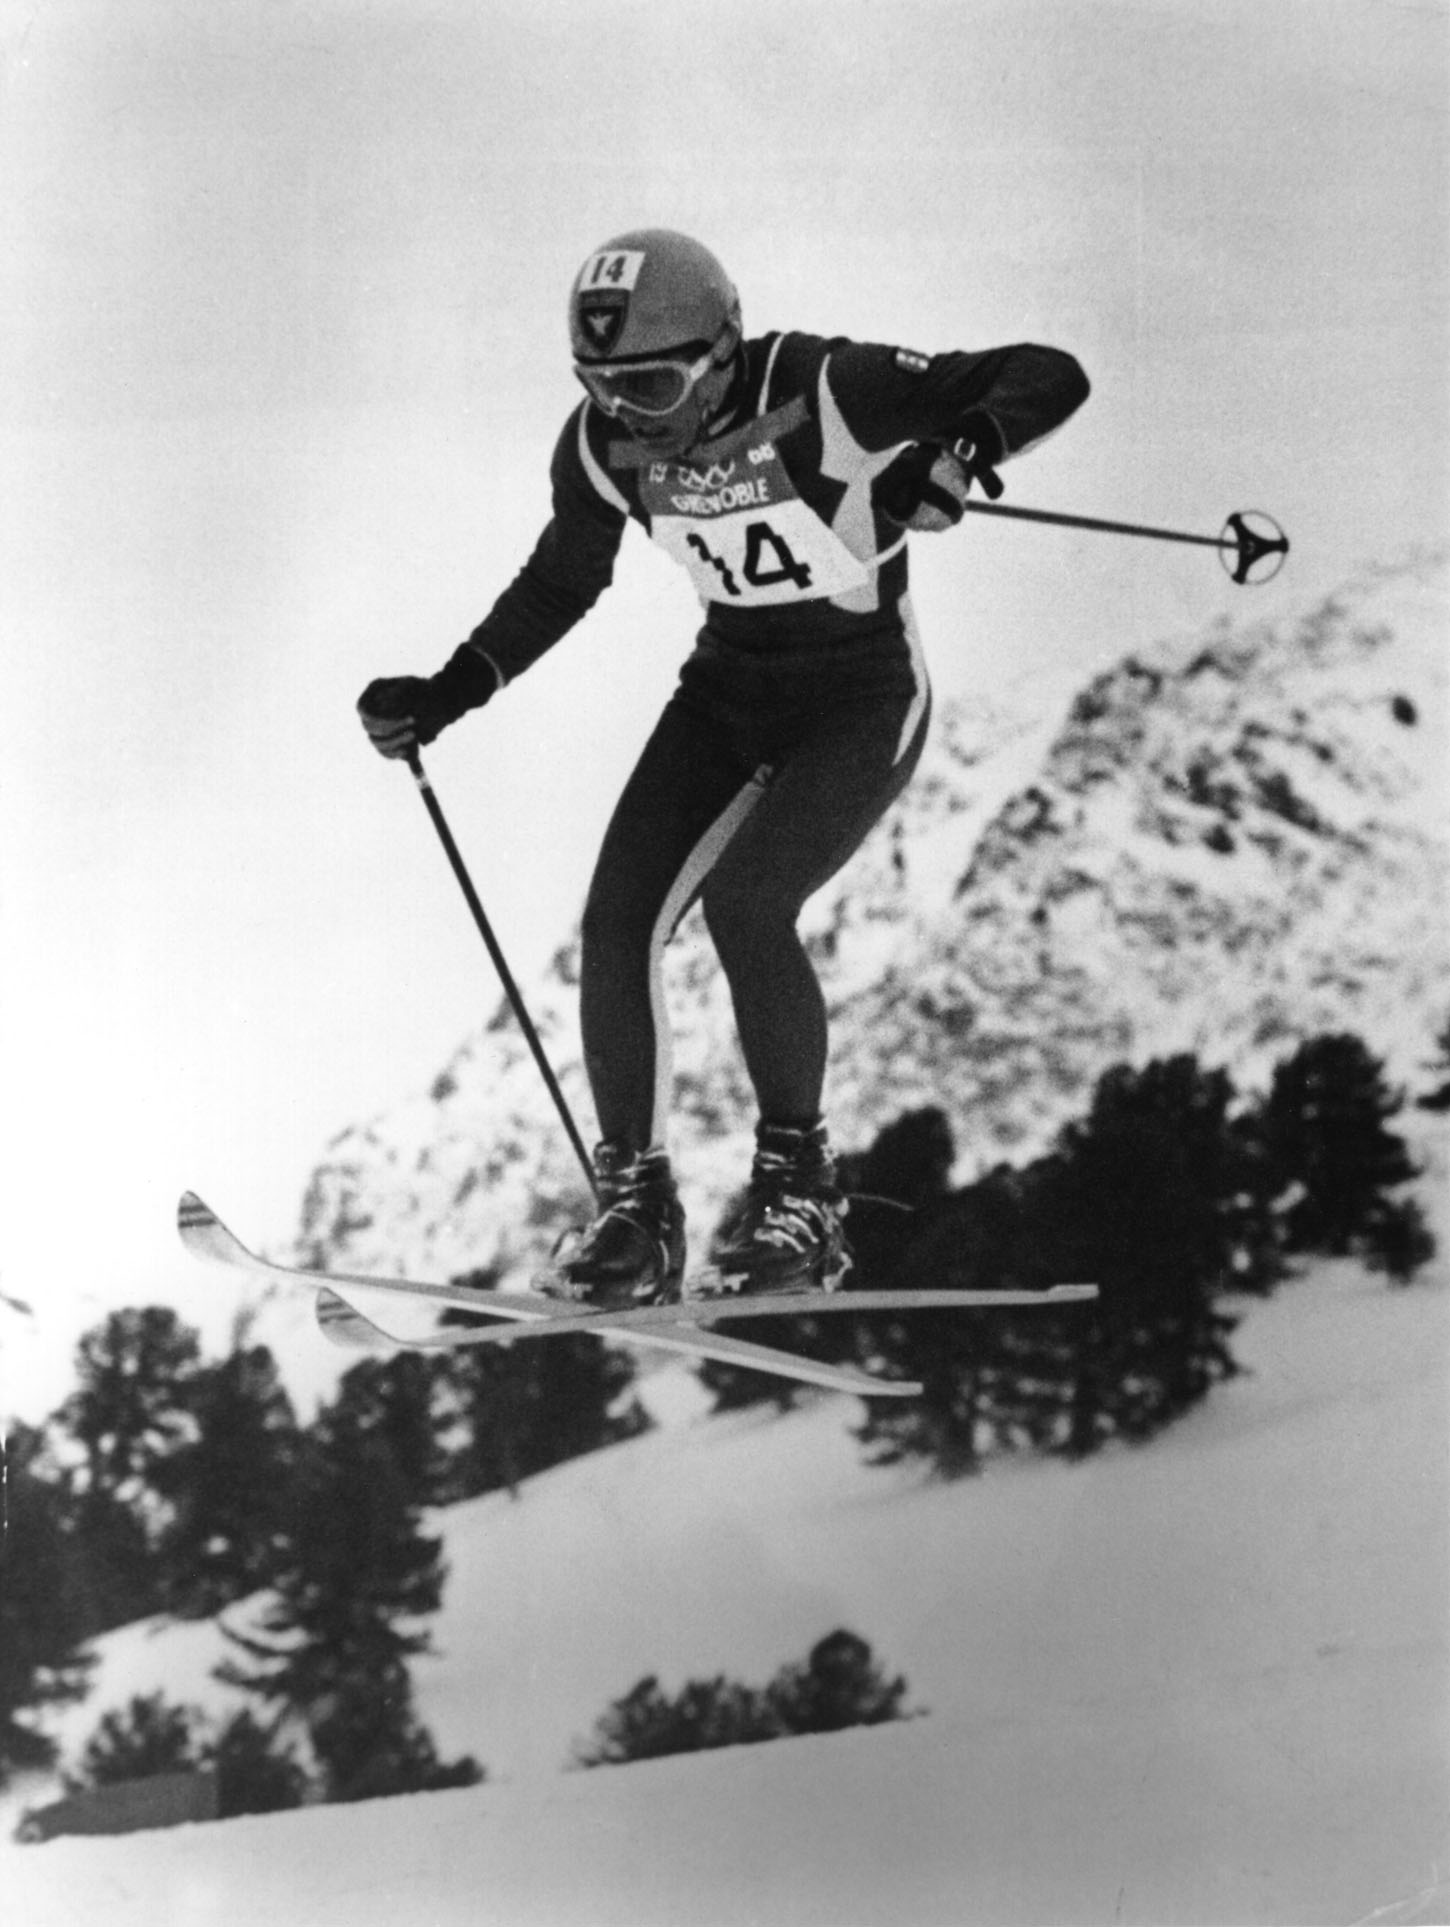 9 FEB 1968:  JEAN-CLAUDE KILLY IN ACTION DURING THE DOWNHILL SKIING AVENT AT THE WINTER OLYMPICS IN GRENOBLE.  KILLY RETAINED THE GOLD MEDAL WITH A TIME OF 1 MINUTE 59.85 SECONDS. Mandatory Credit: Allsport Hulton/Archive